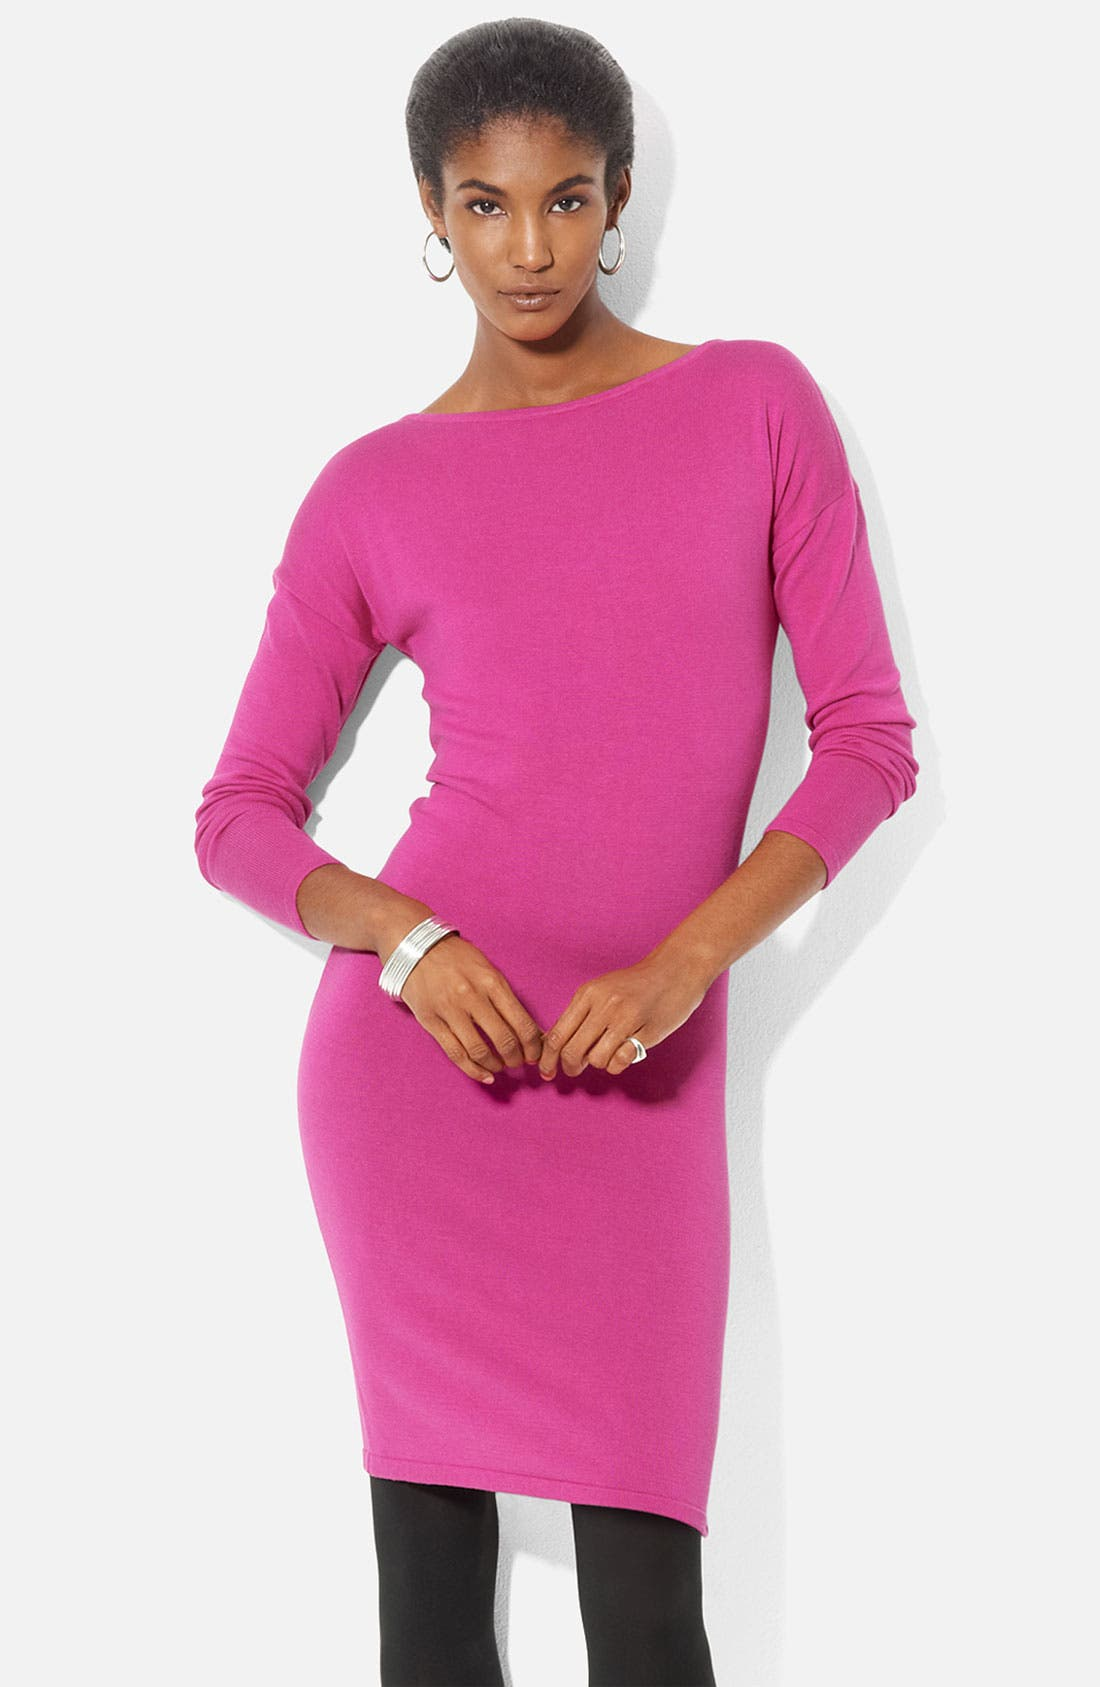 Alternate Image 1 Selected - Lauren Ralph Lauren Bateau Neck Merino Knit Dress (Petite)